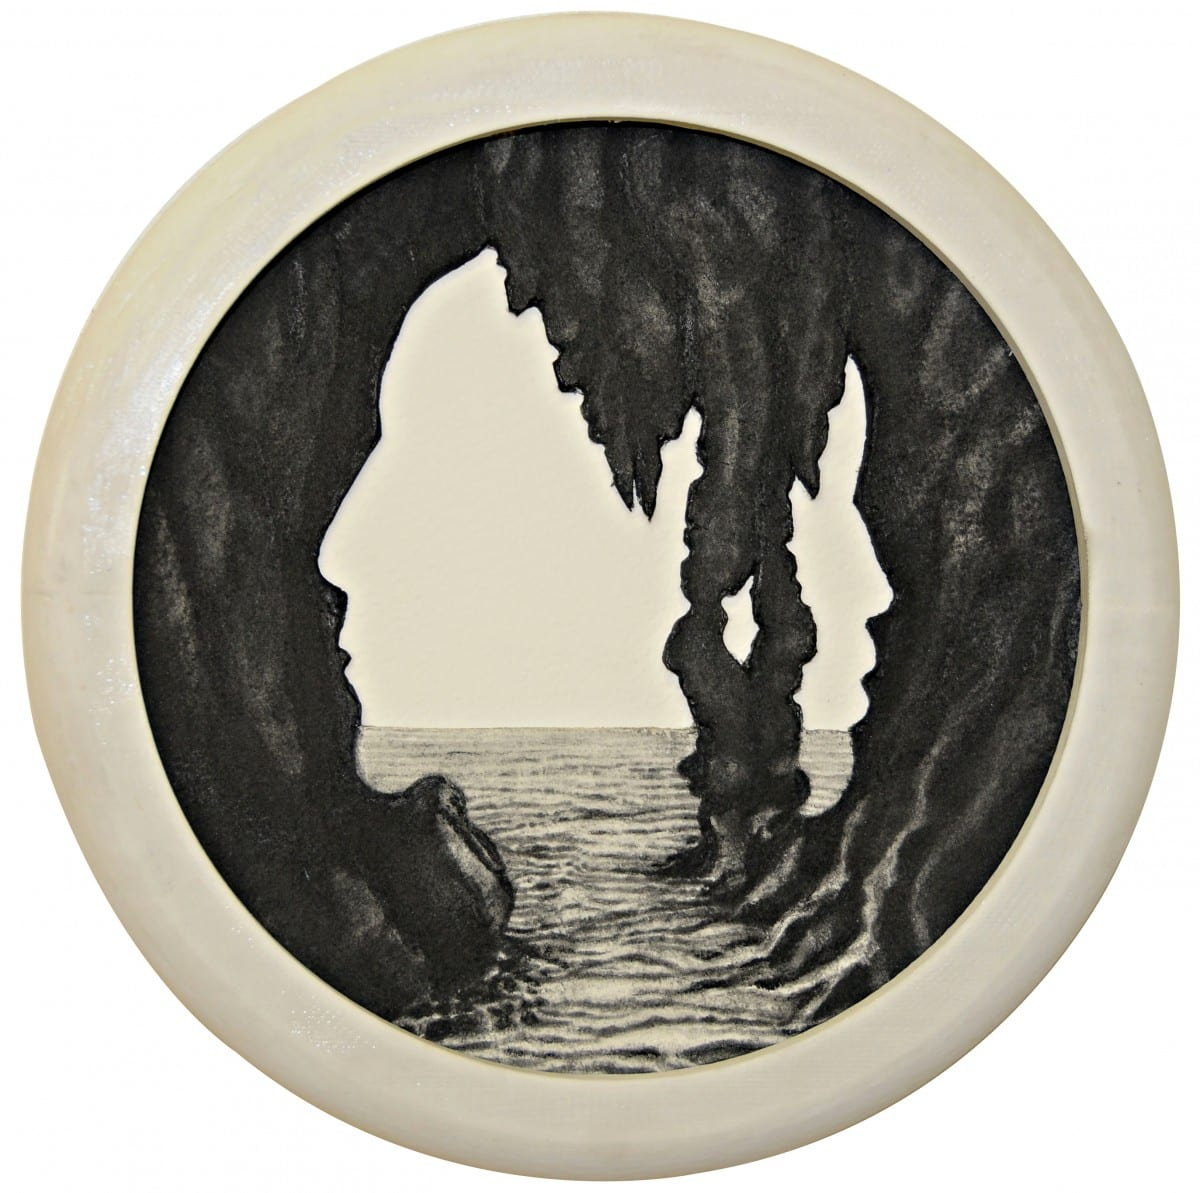 "Colette Robbins, The Fortress, graphite painting on paper, custom 3D printed frame, 6.5"" diameter, 2013"